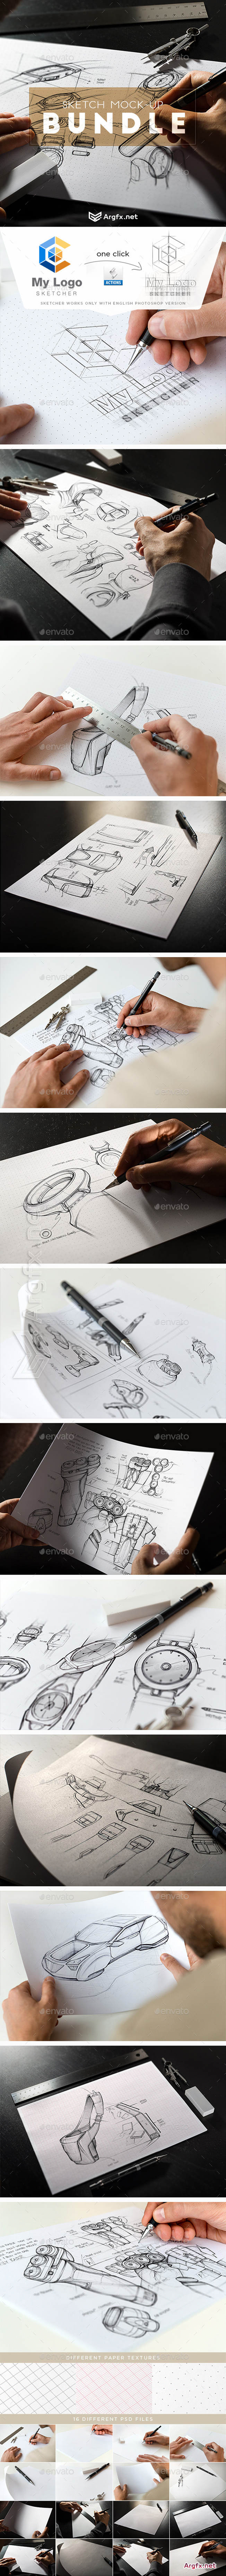 GraphicRiver - Sketch Mock-Up Bundle 11469539